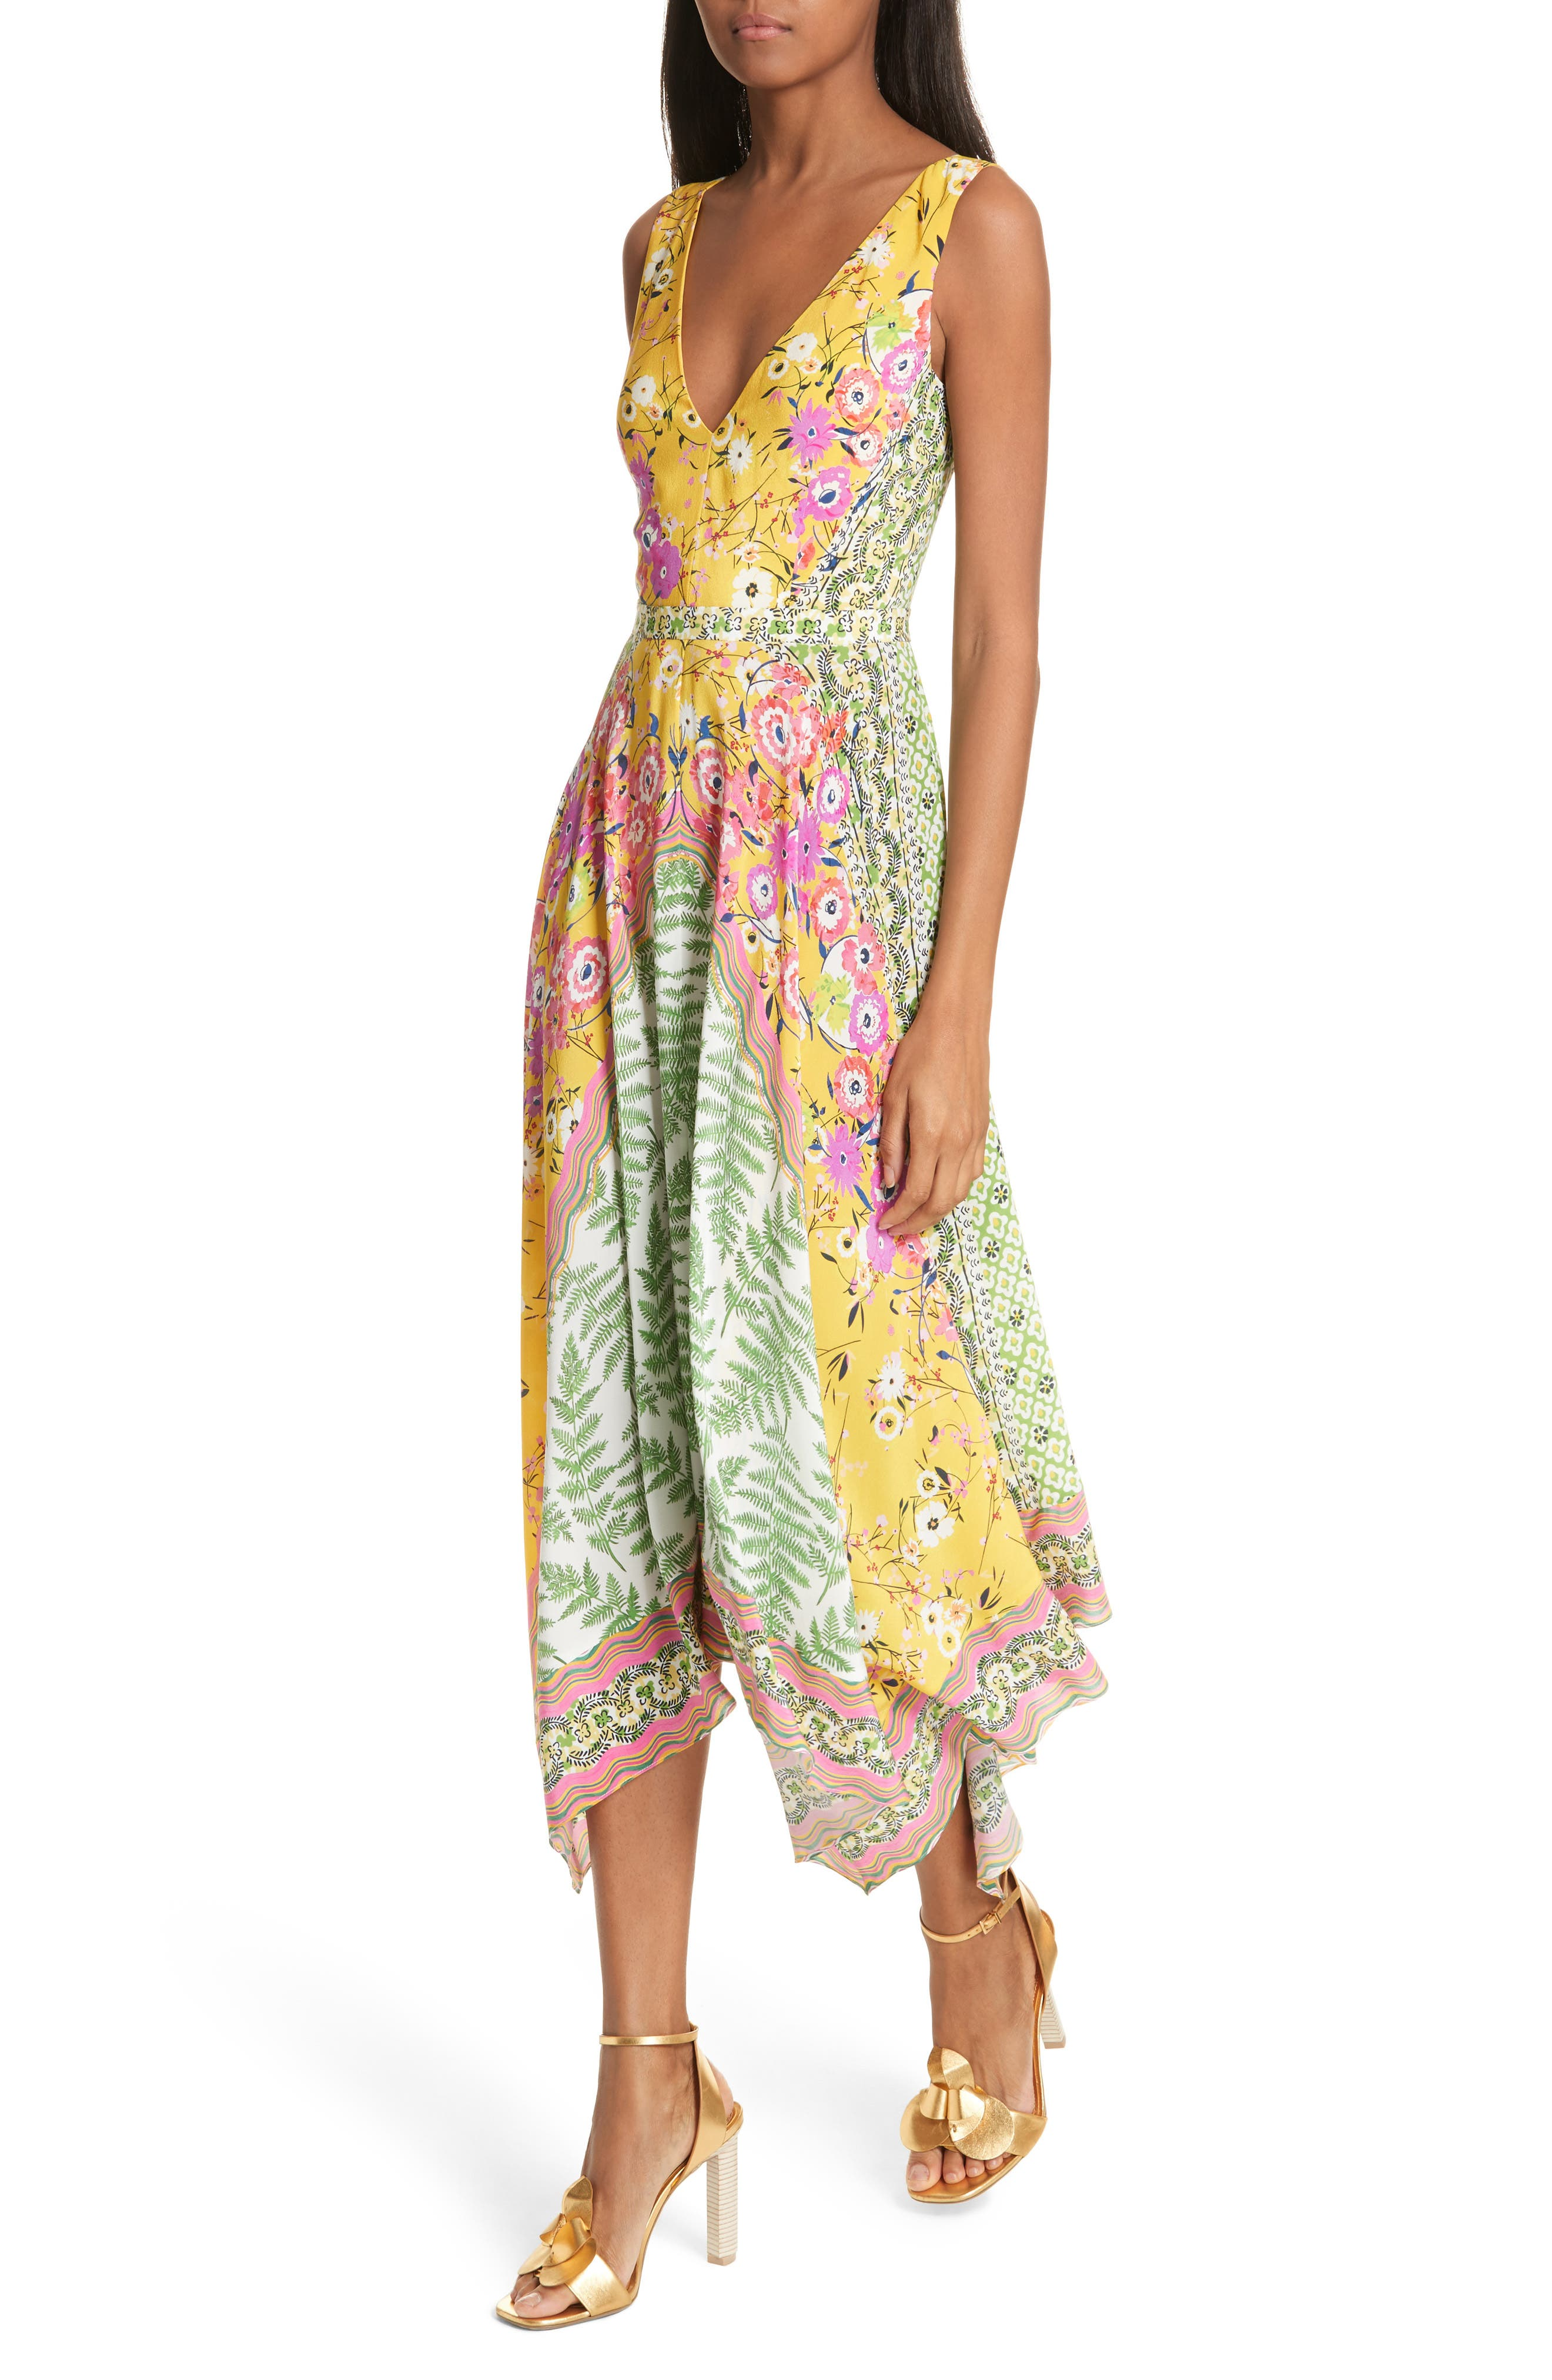 Zuri Floral Print Dress,                             Alternate thumbnail 4, color,                             Flowers/ Ferns